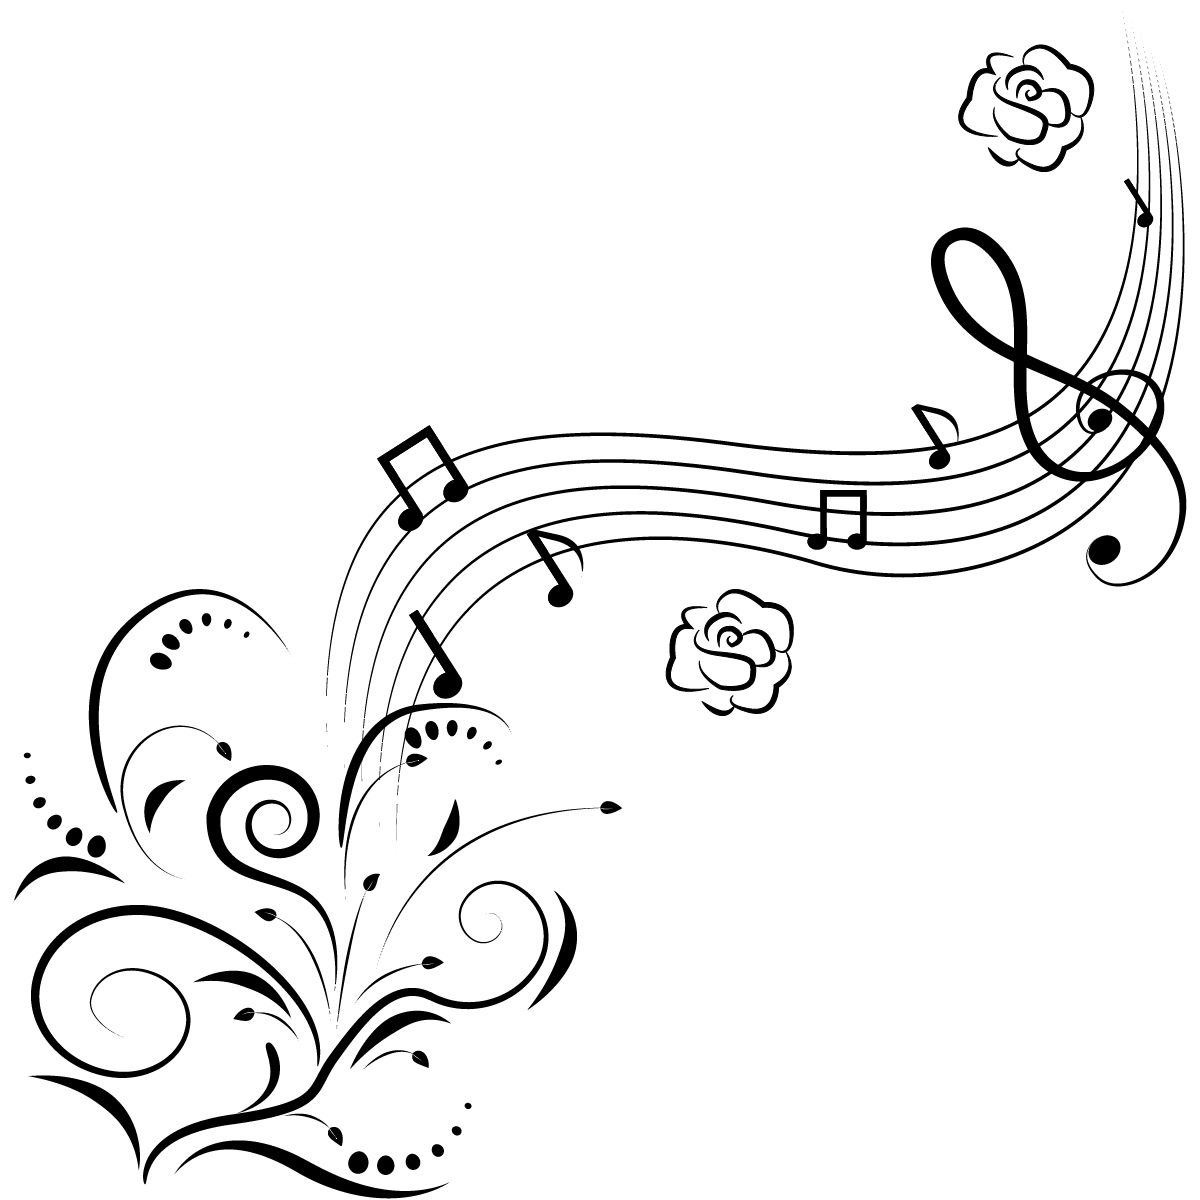 Drawn music notes simple Music Music Wall Transfers about